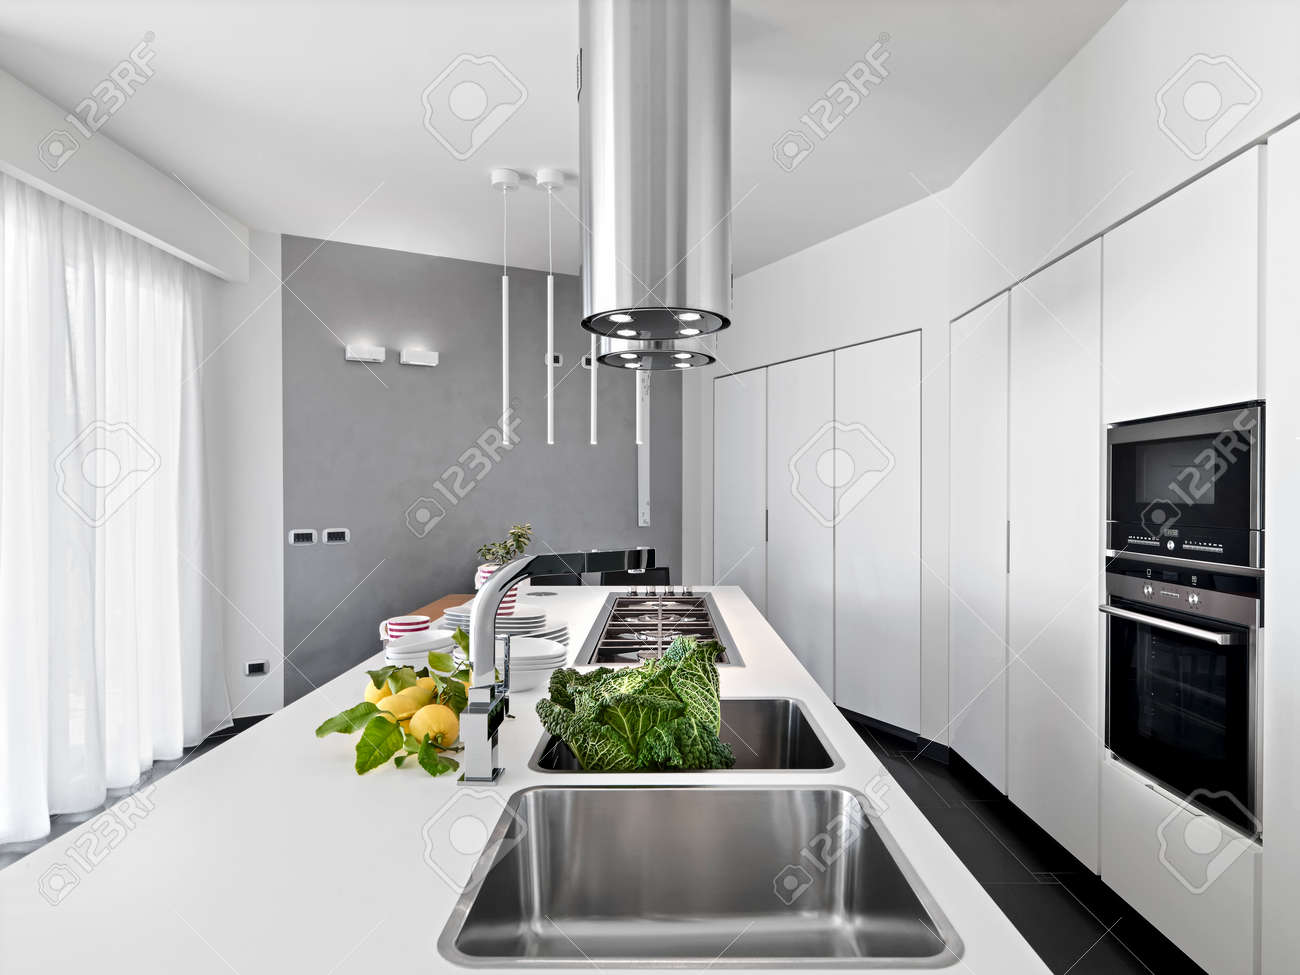 internal view of a modern kitchen in foreground still sink with vegetable and lemons on the worktop - 50767127